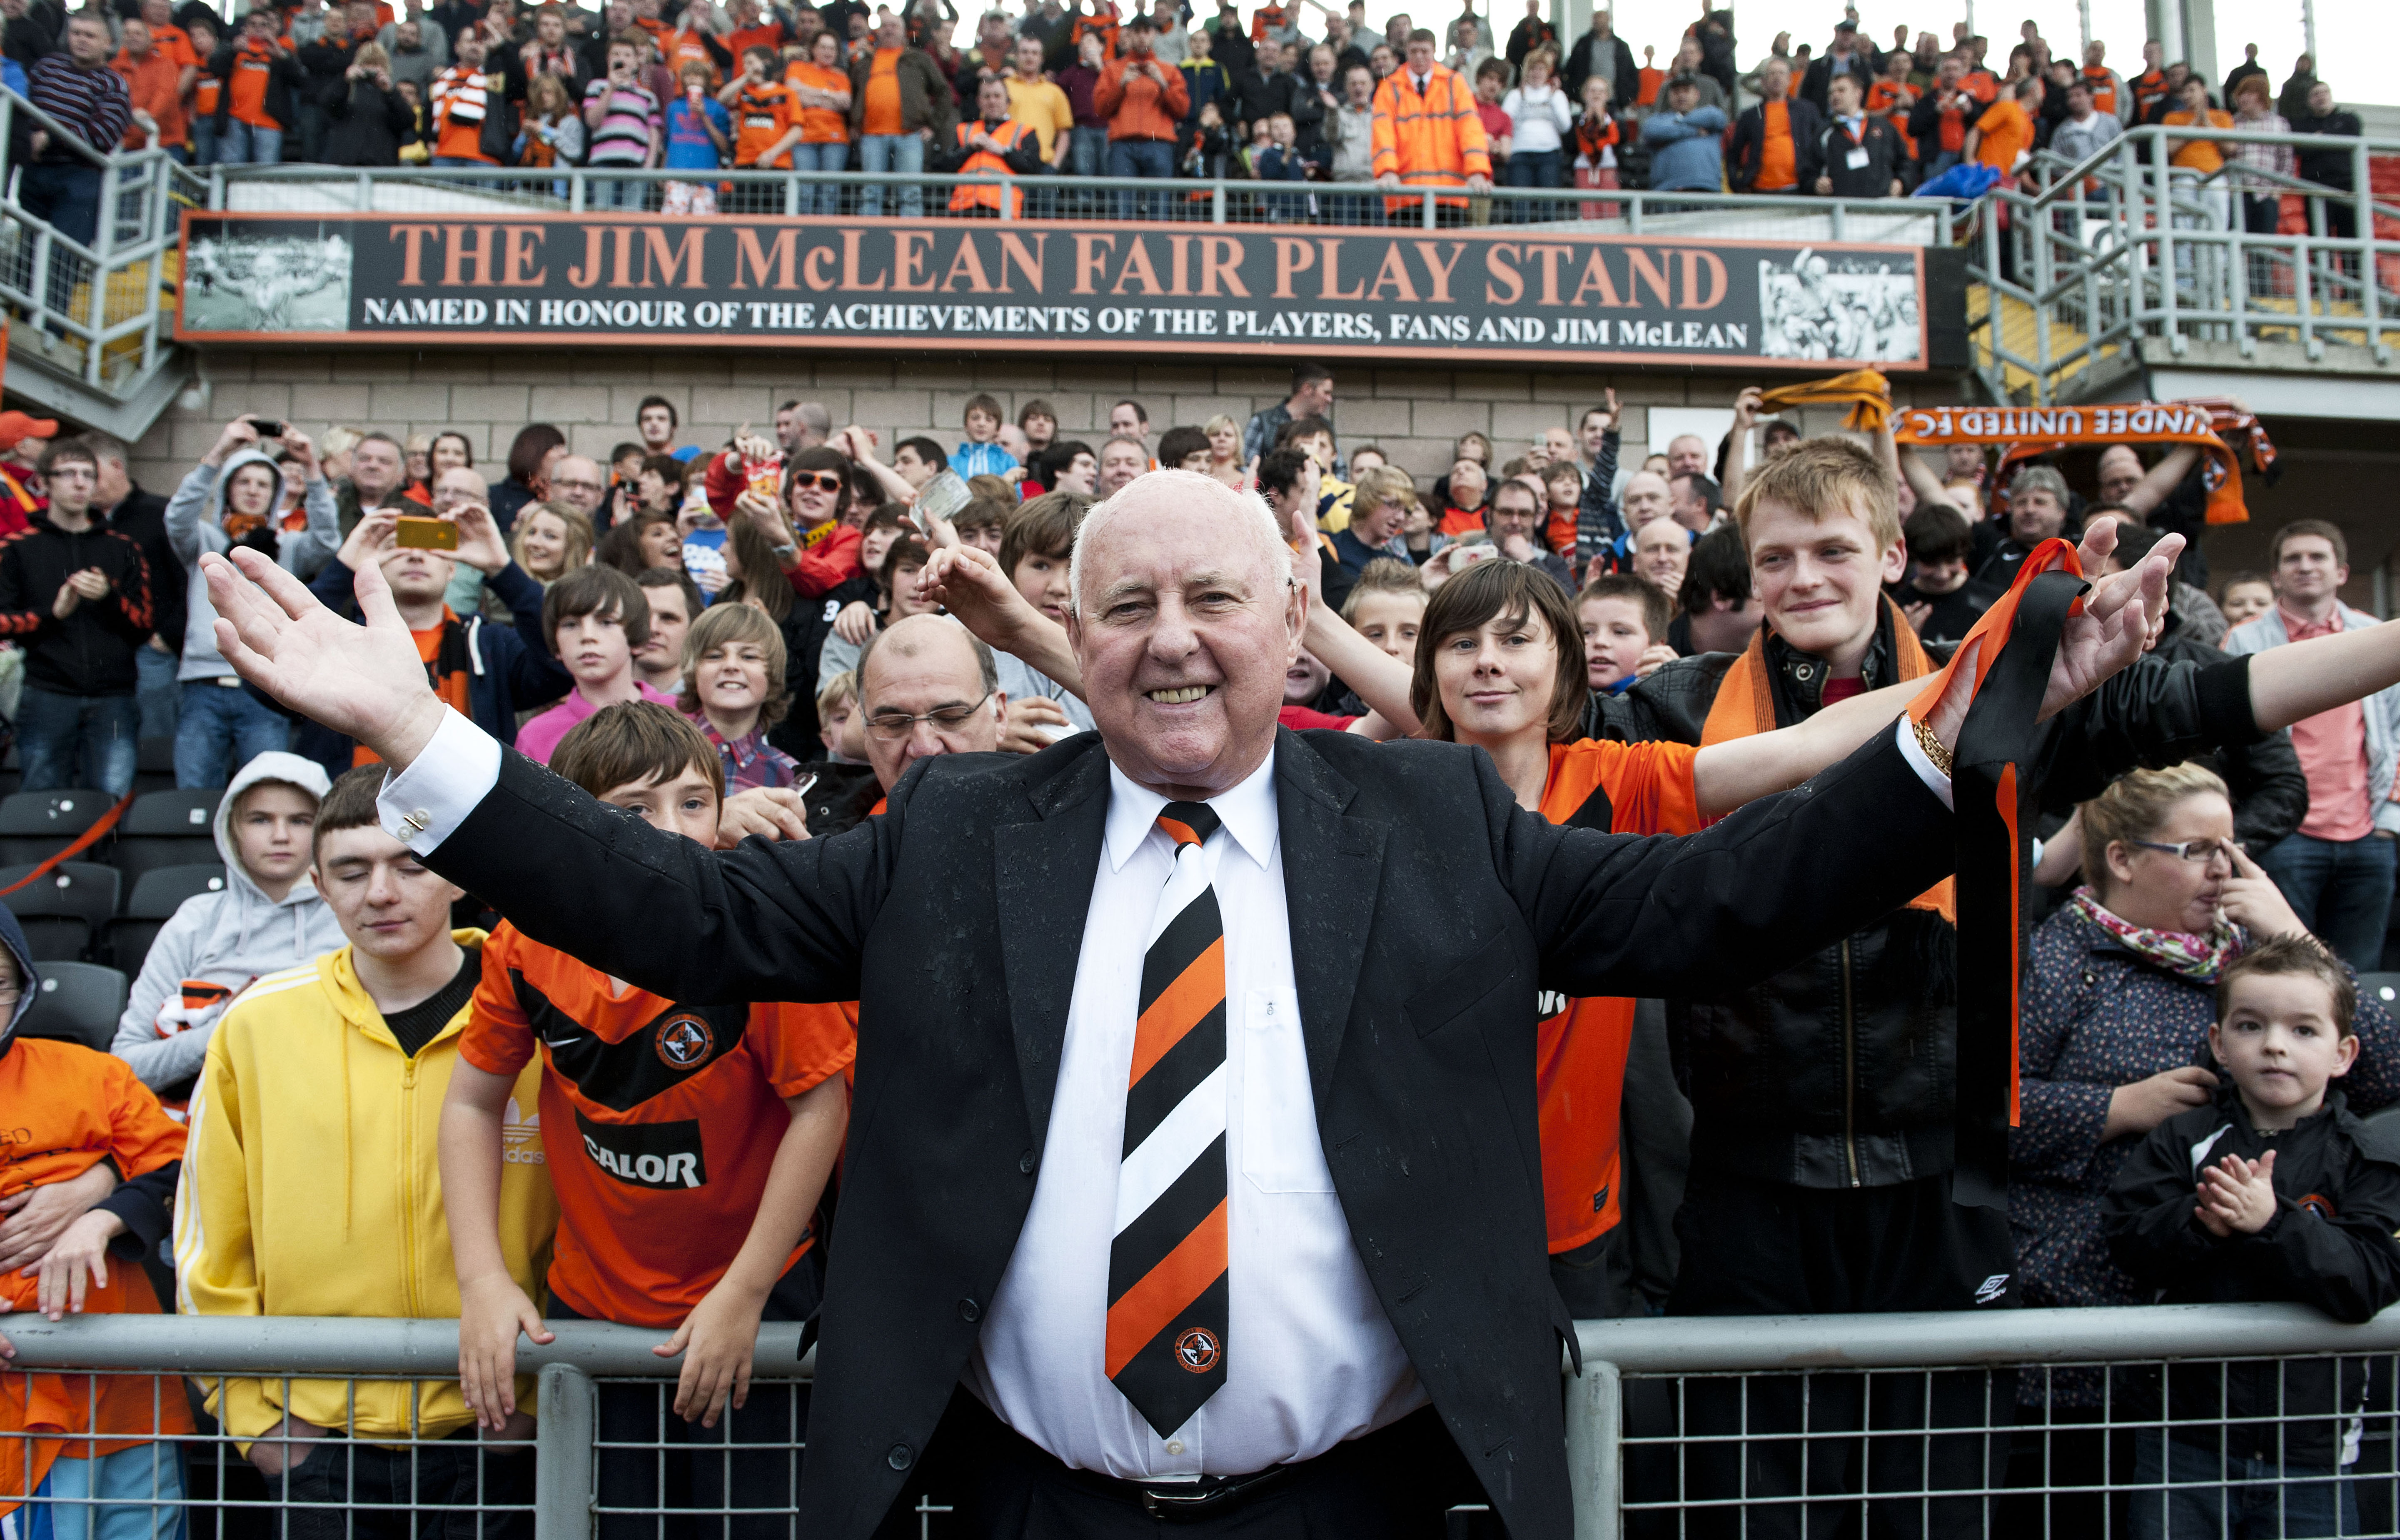 Dundee United legend Jim McLean celebrates with fans after a stand at Tannadice is named after him in 2011.